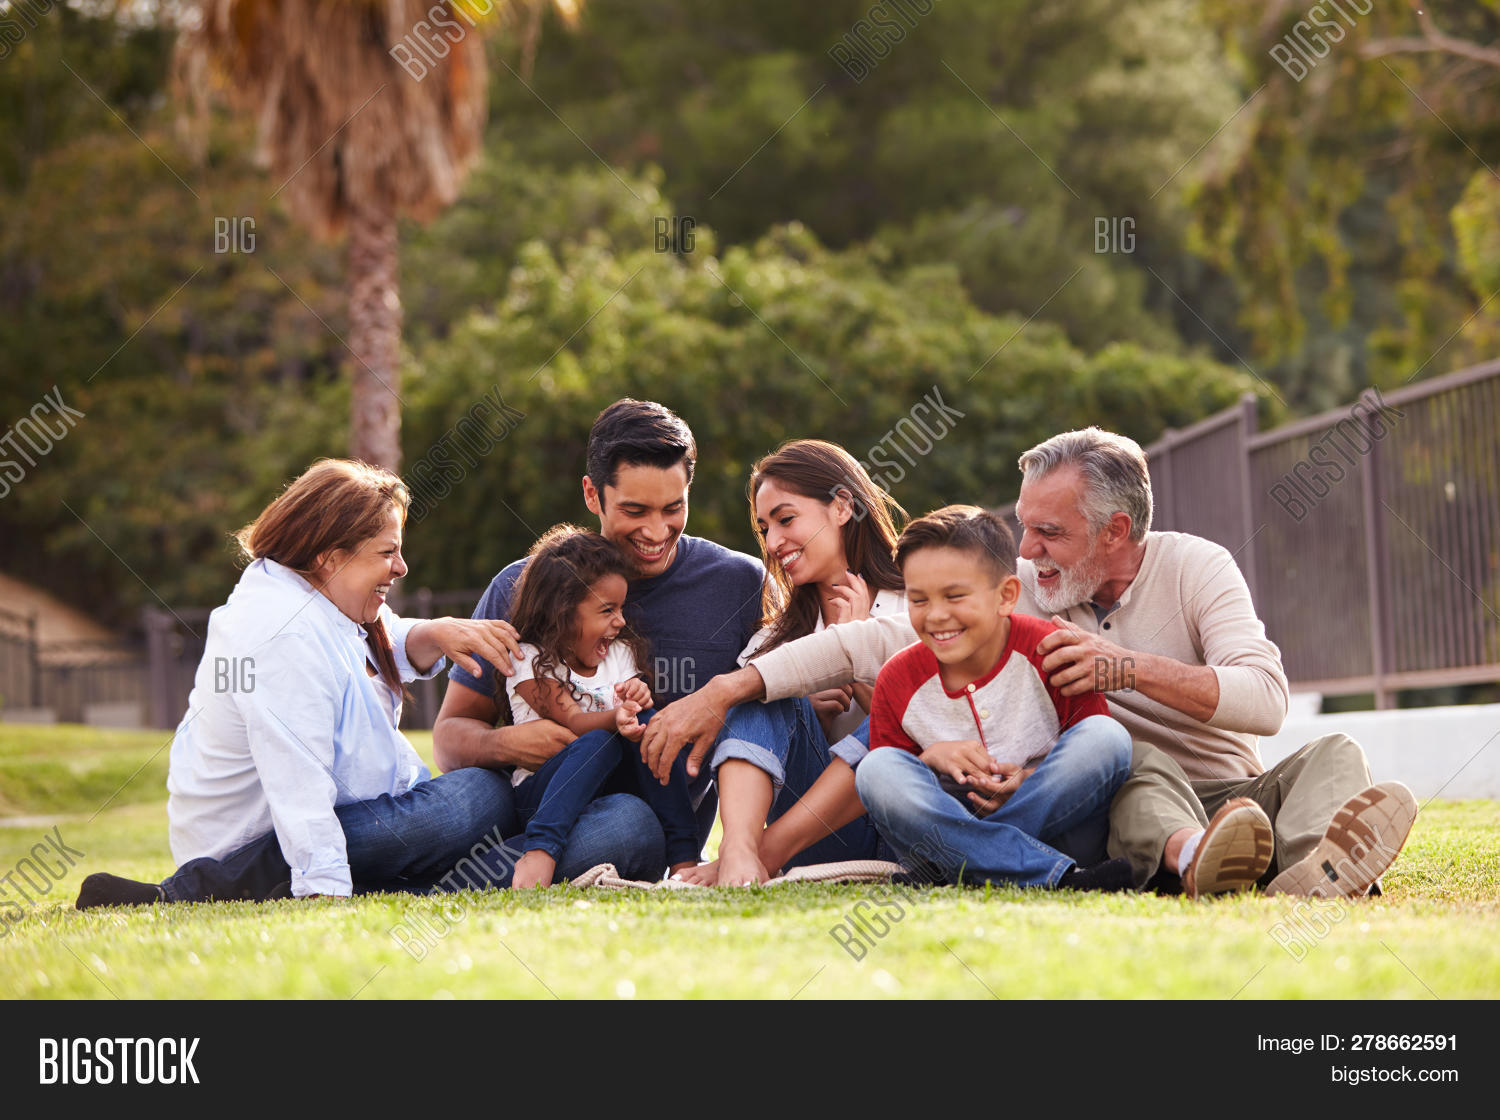 20s,30s,50s,60s,adult child,adults,bonding,boy,brother,children,communication,dad,daughter,day,family,family time,father,full length,garden,girl,grandfather,grandmother,happy,hispanic ethnicity,horizontal,kids,laughing,looking at each other,low angle,medium group of people,men,middle aged,millennial,mother,mum,outdoors,parents,park,pre-teen,selective focus,senior,sister,sitting on grass,smiling,son,sunlight,three generation family,togetherness,women,young adults